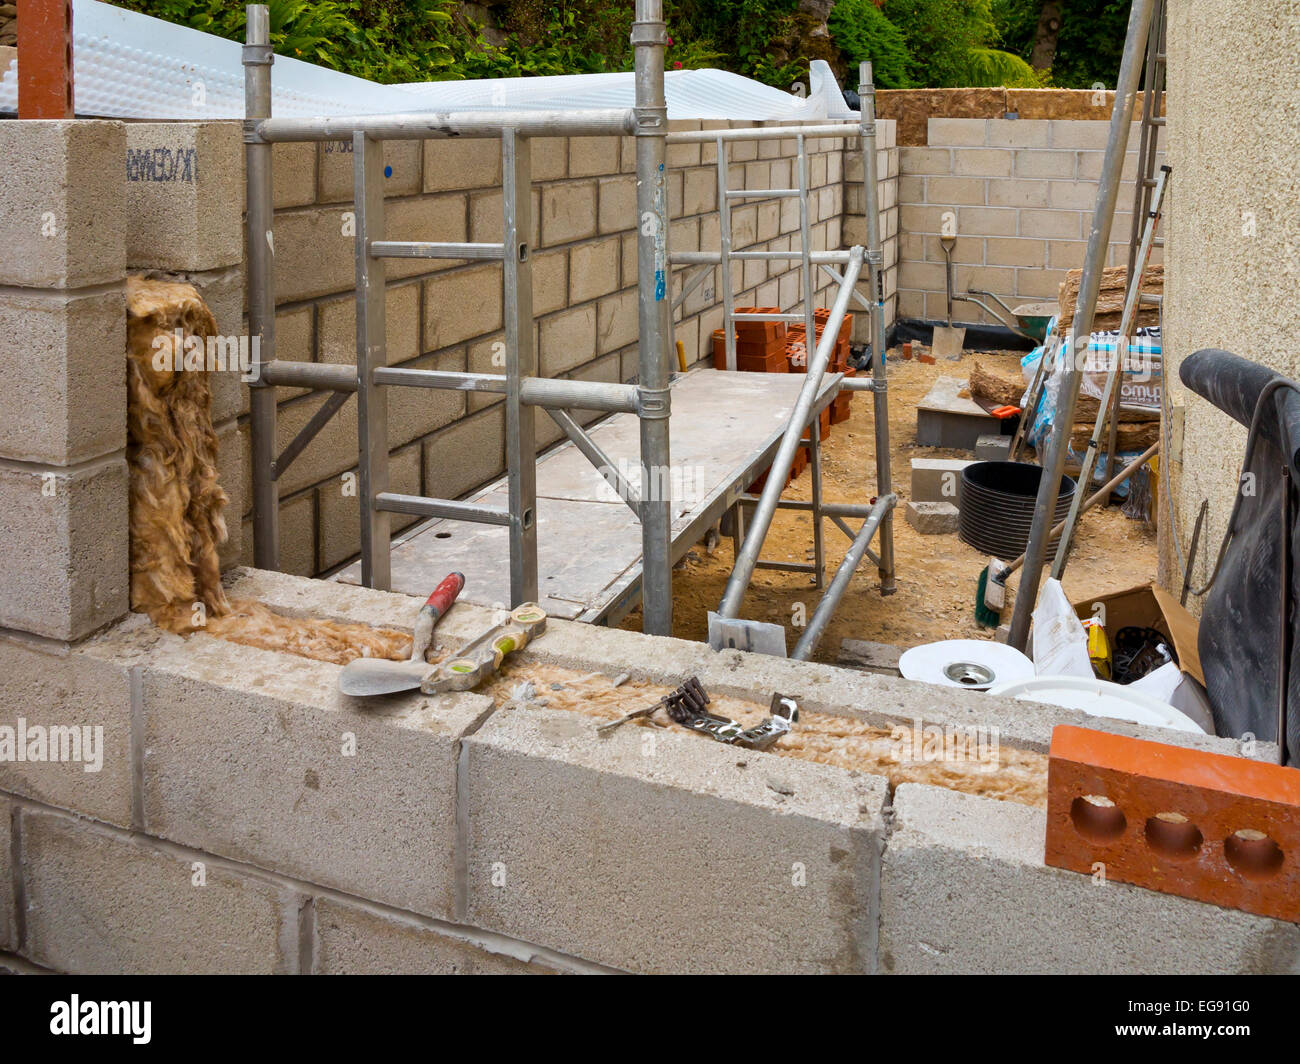 House Extension Under Construction With Insulating Material Visible In  Cavity Between Two Breeze Block Walls To